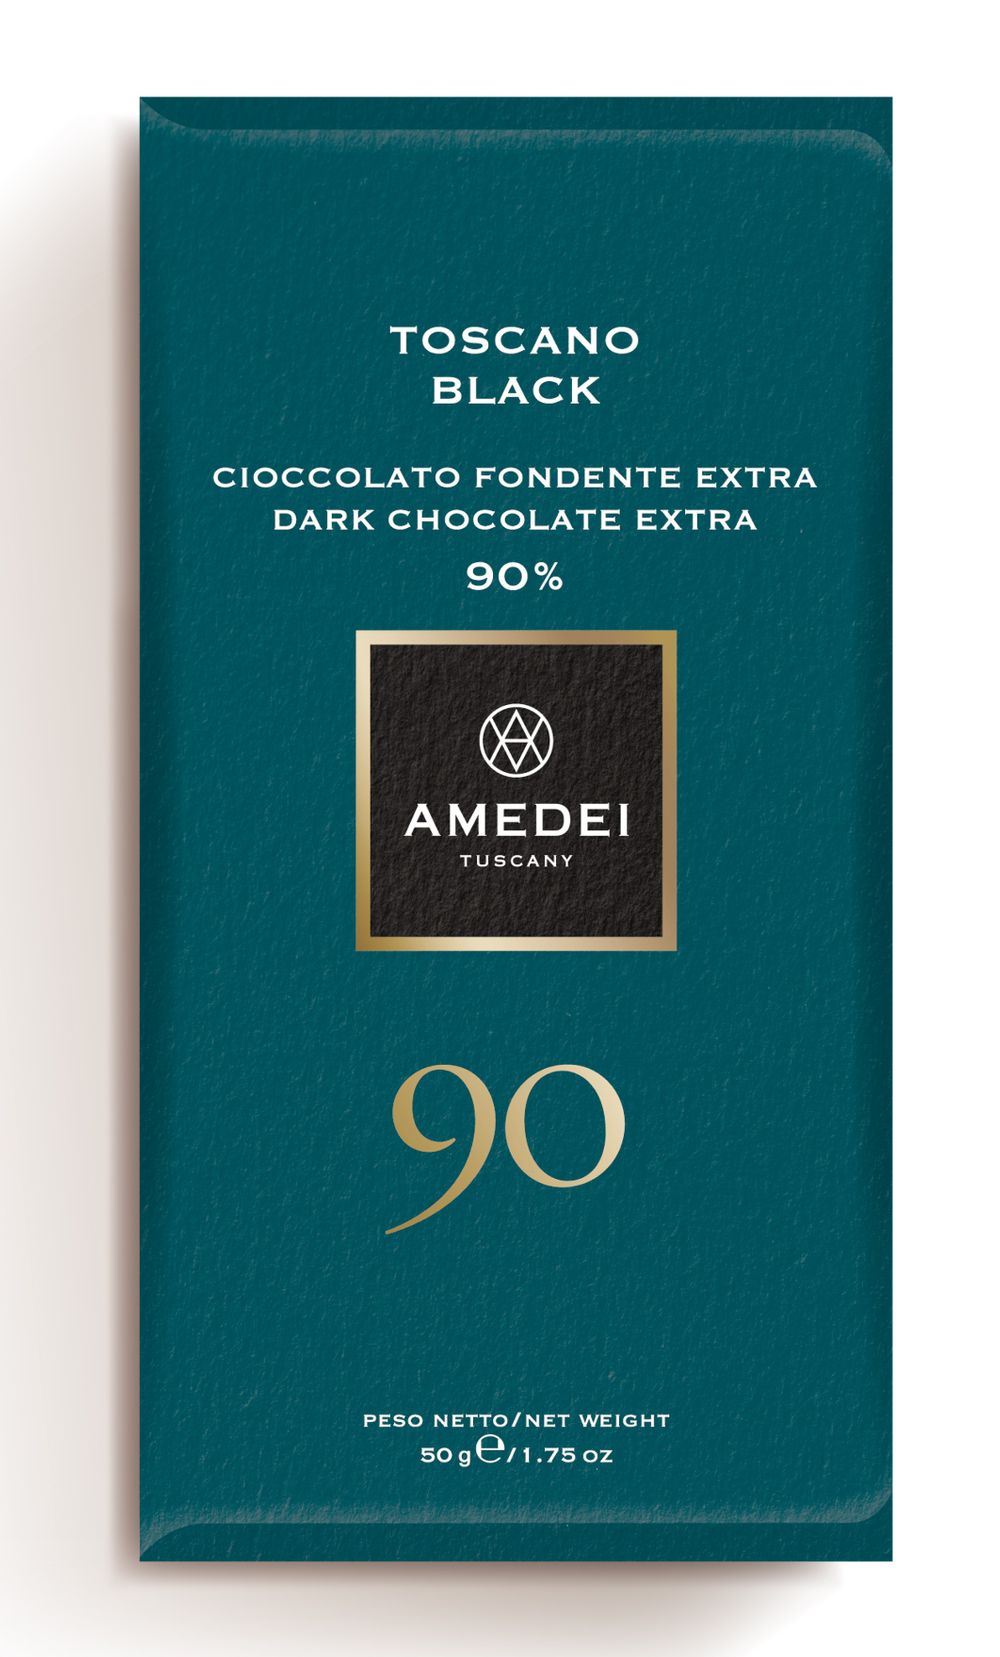 Toscano Black Extra Dark Chocolate 90%